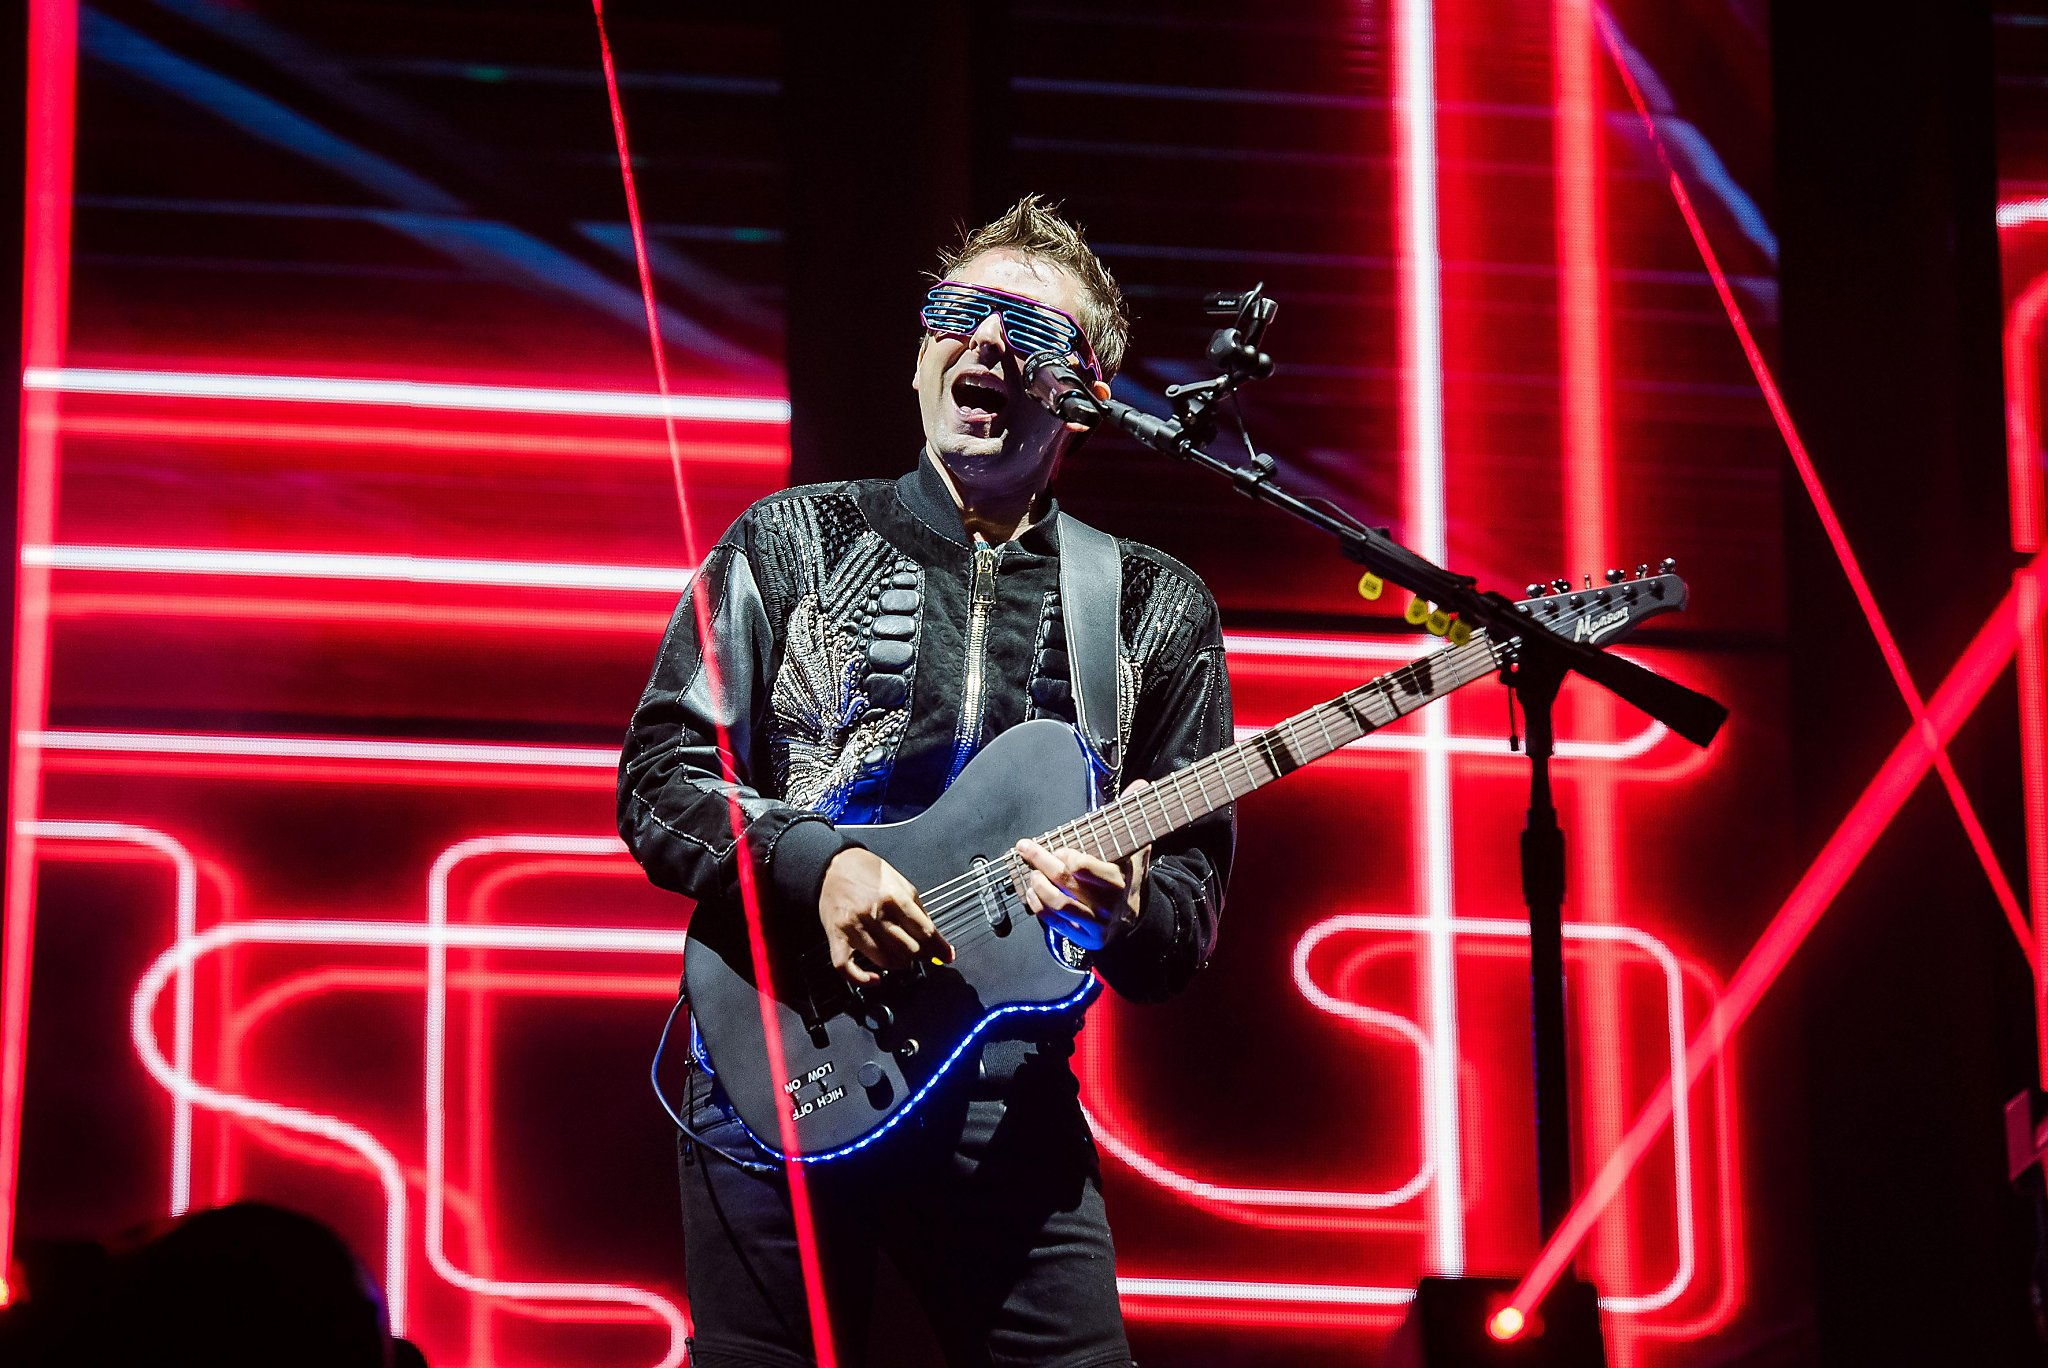 Pa'l Norte music lineup features Muse, Queens of the Stone Age, Justice, Franz Ferdinand, Molotov